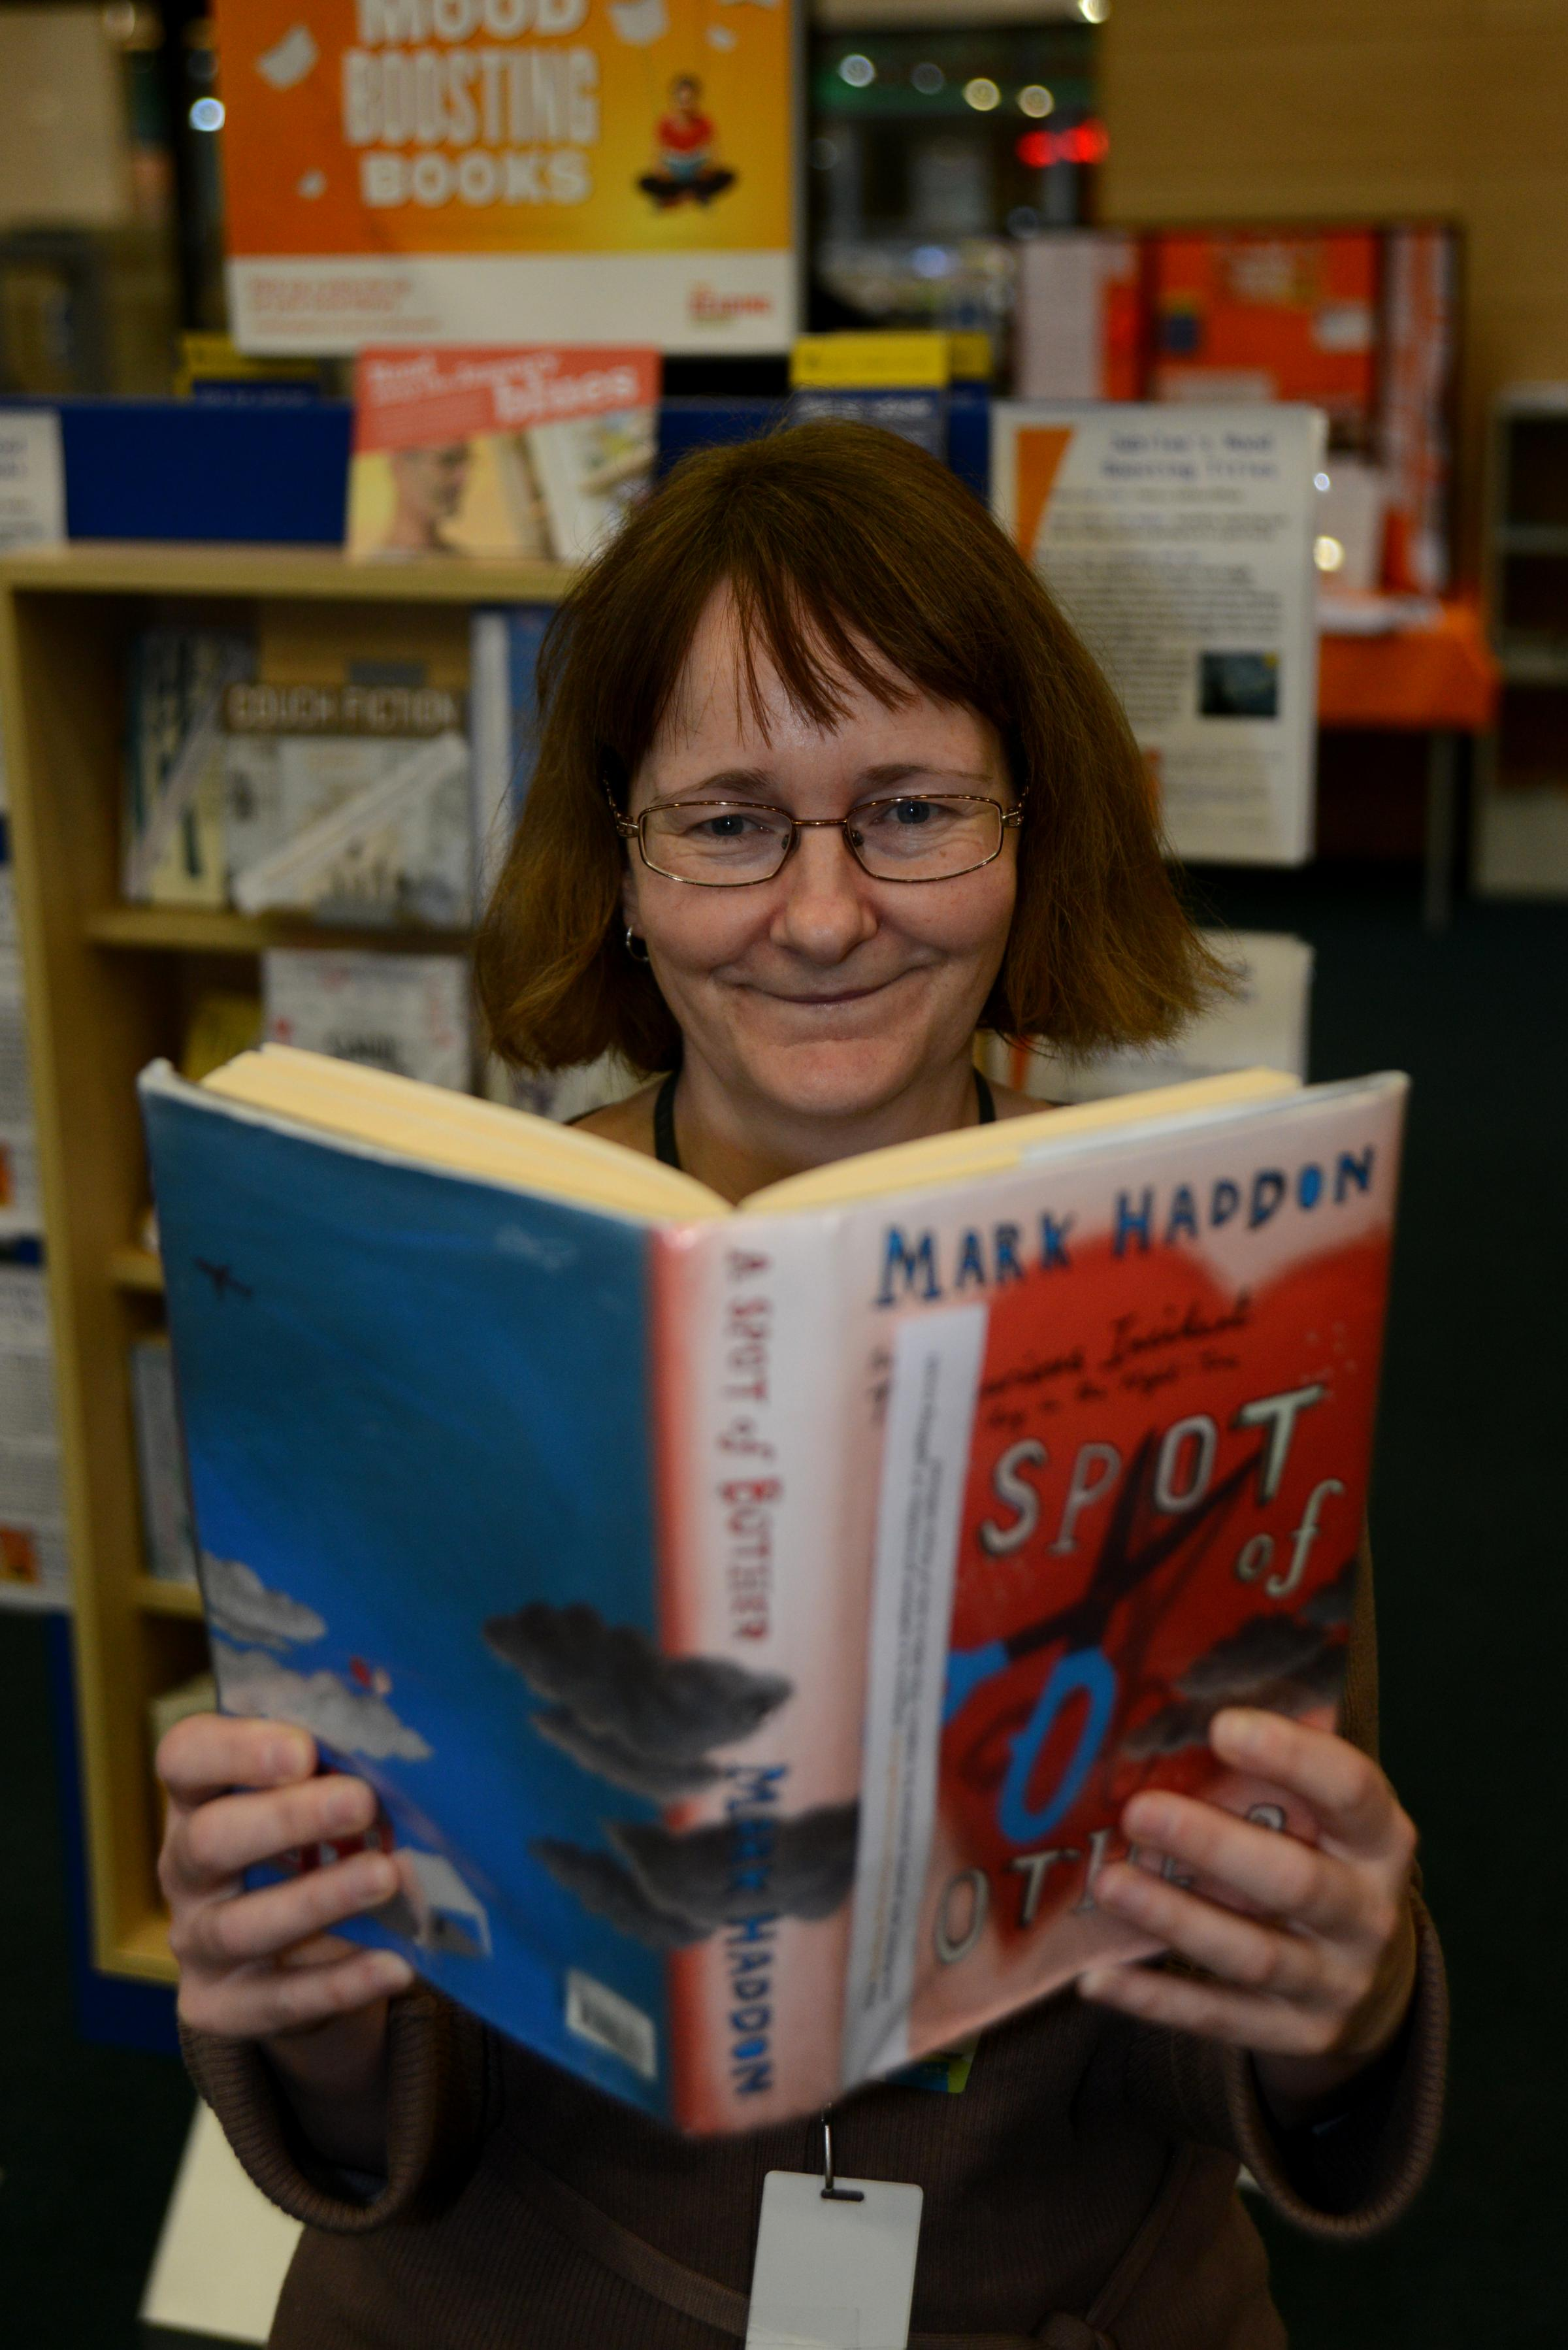 Librarian Julie O'Neil, who created Jubilee Library's display of mood-enhancing books